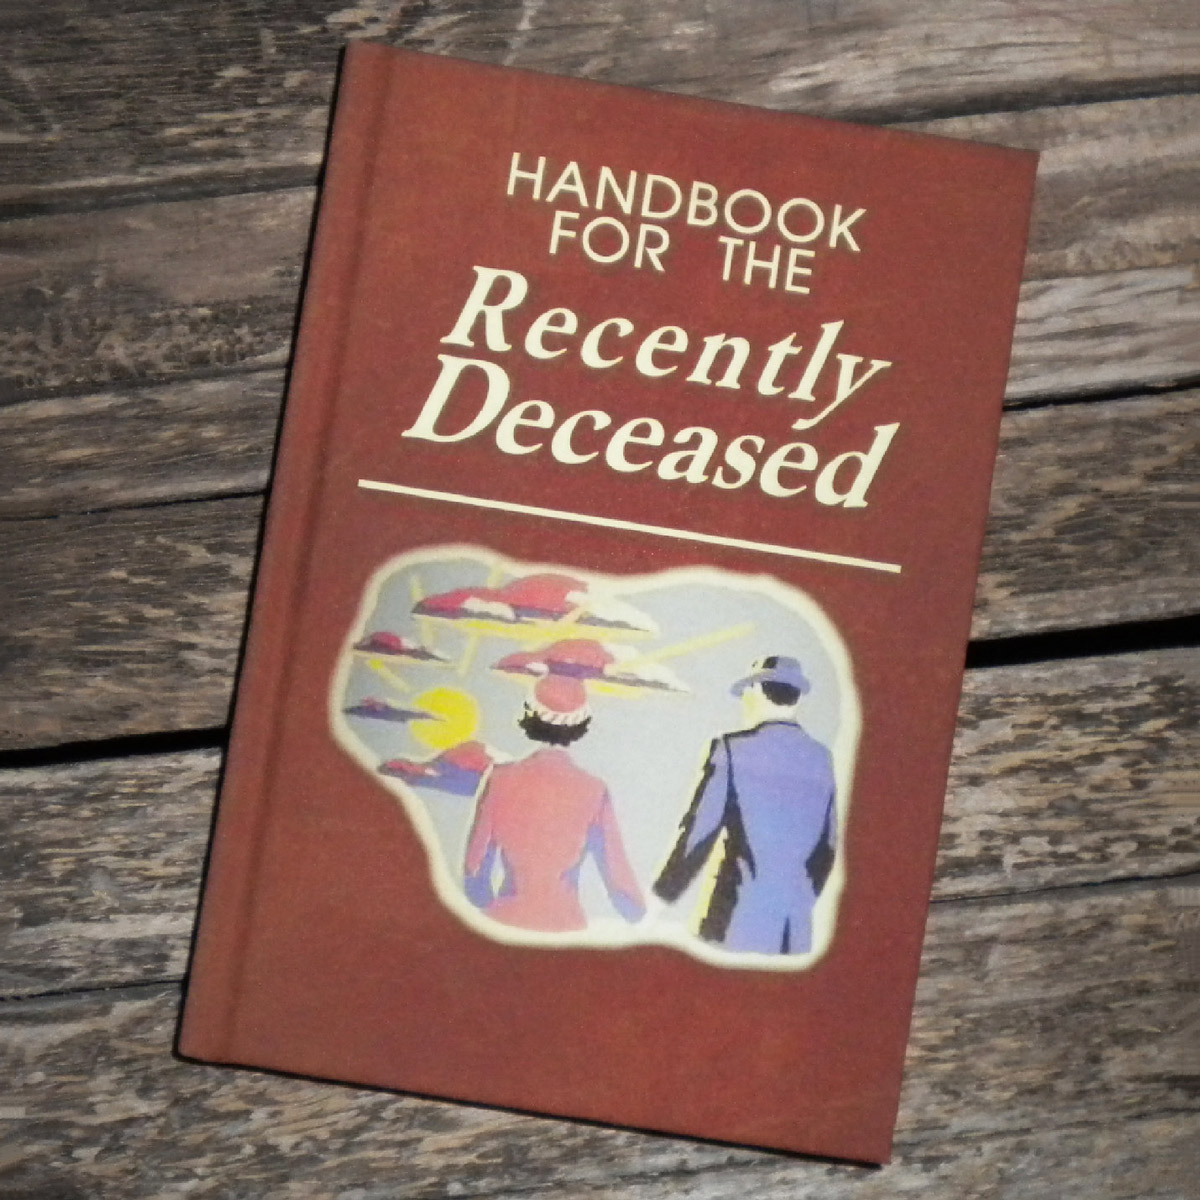 handbook-for-recently-deceased-from-beetlejuice-1.jpg